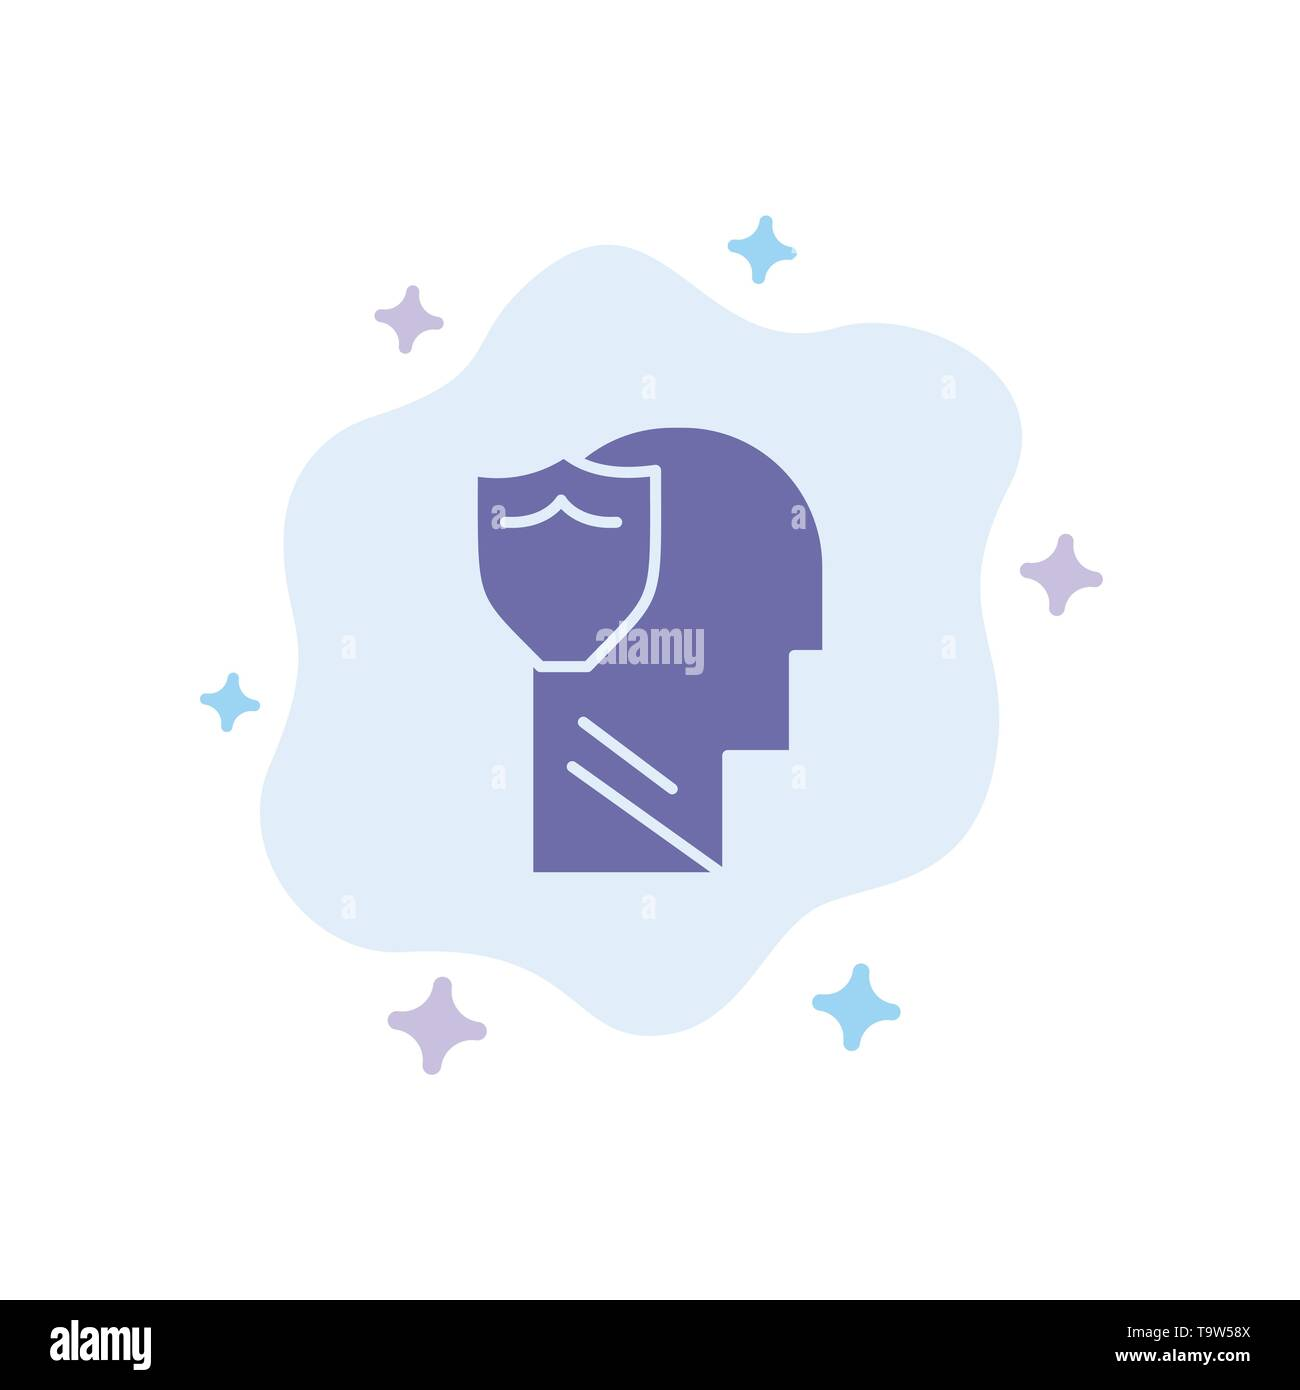 Shield, Secure, Male, User, Data Blue Icon on Abstract Cloud Background - Stock Image